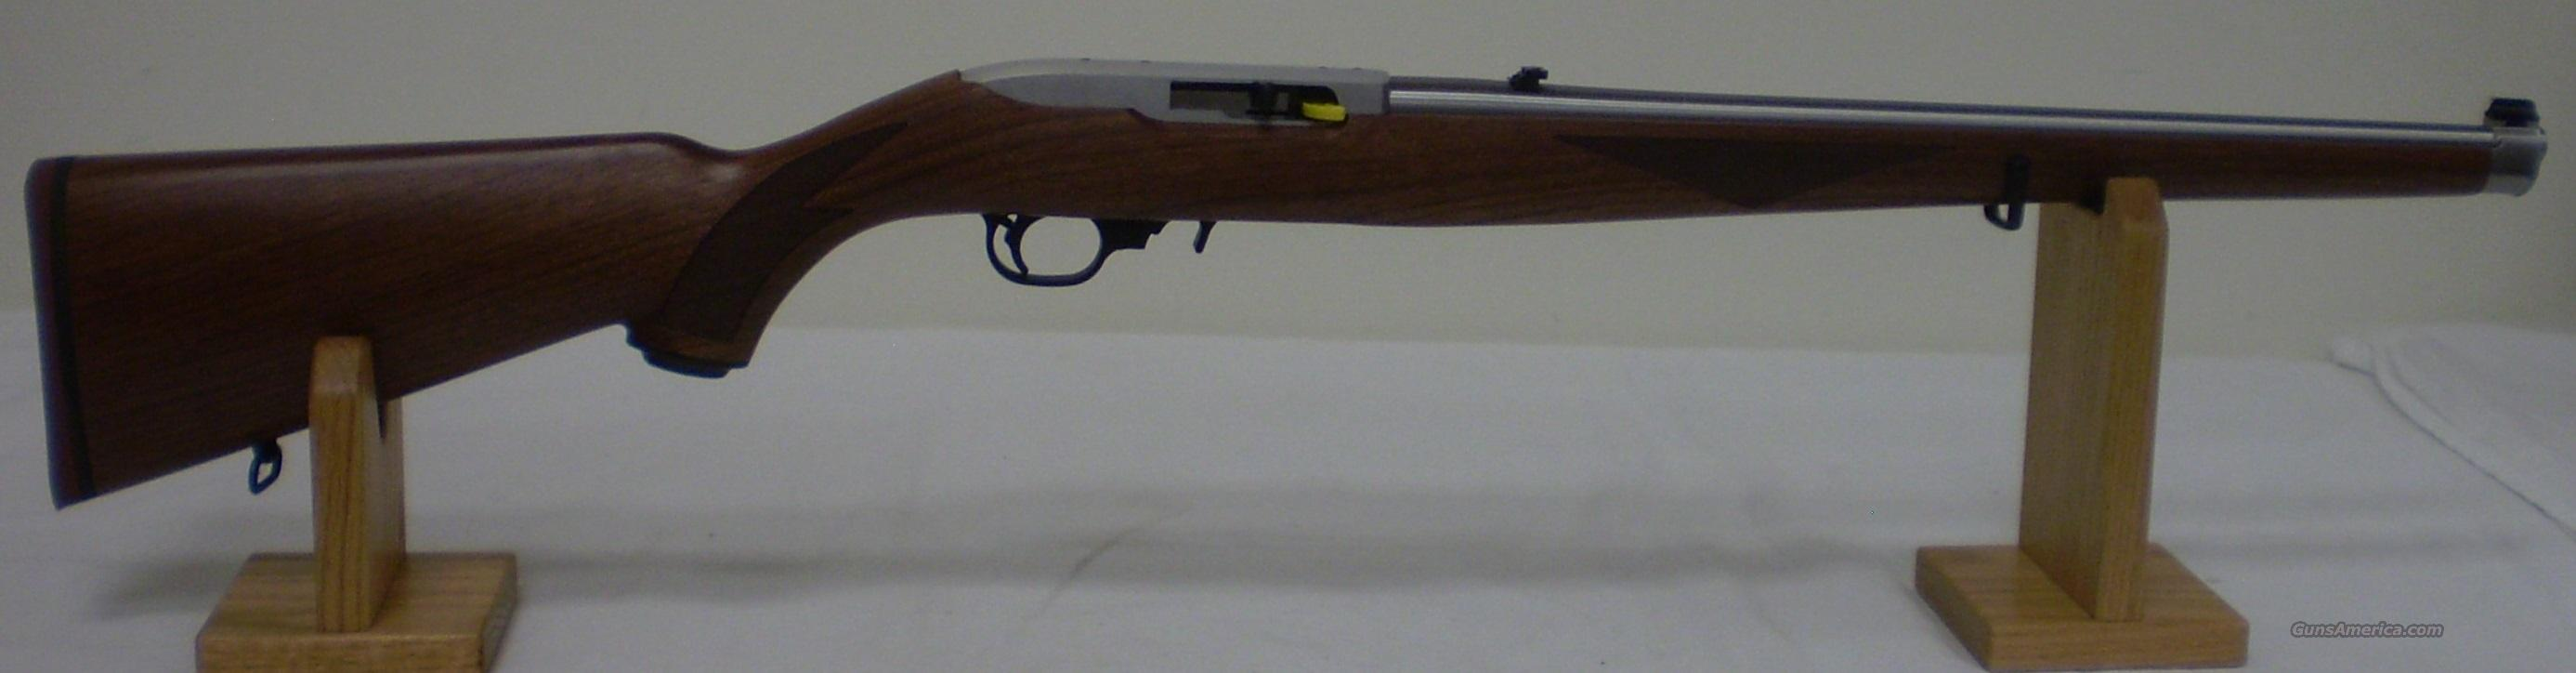 Ruger Talo Edition 10/22 SS Mannlicher # 1264 22LR  Guns > Rifles > Ruger Rifles > 10-22